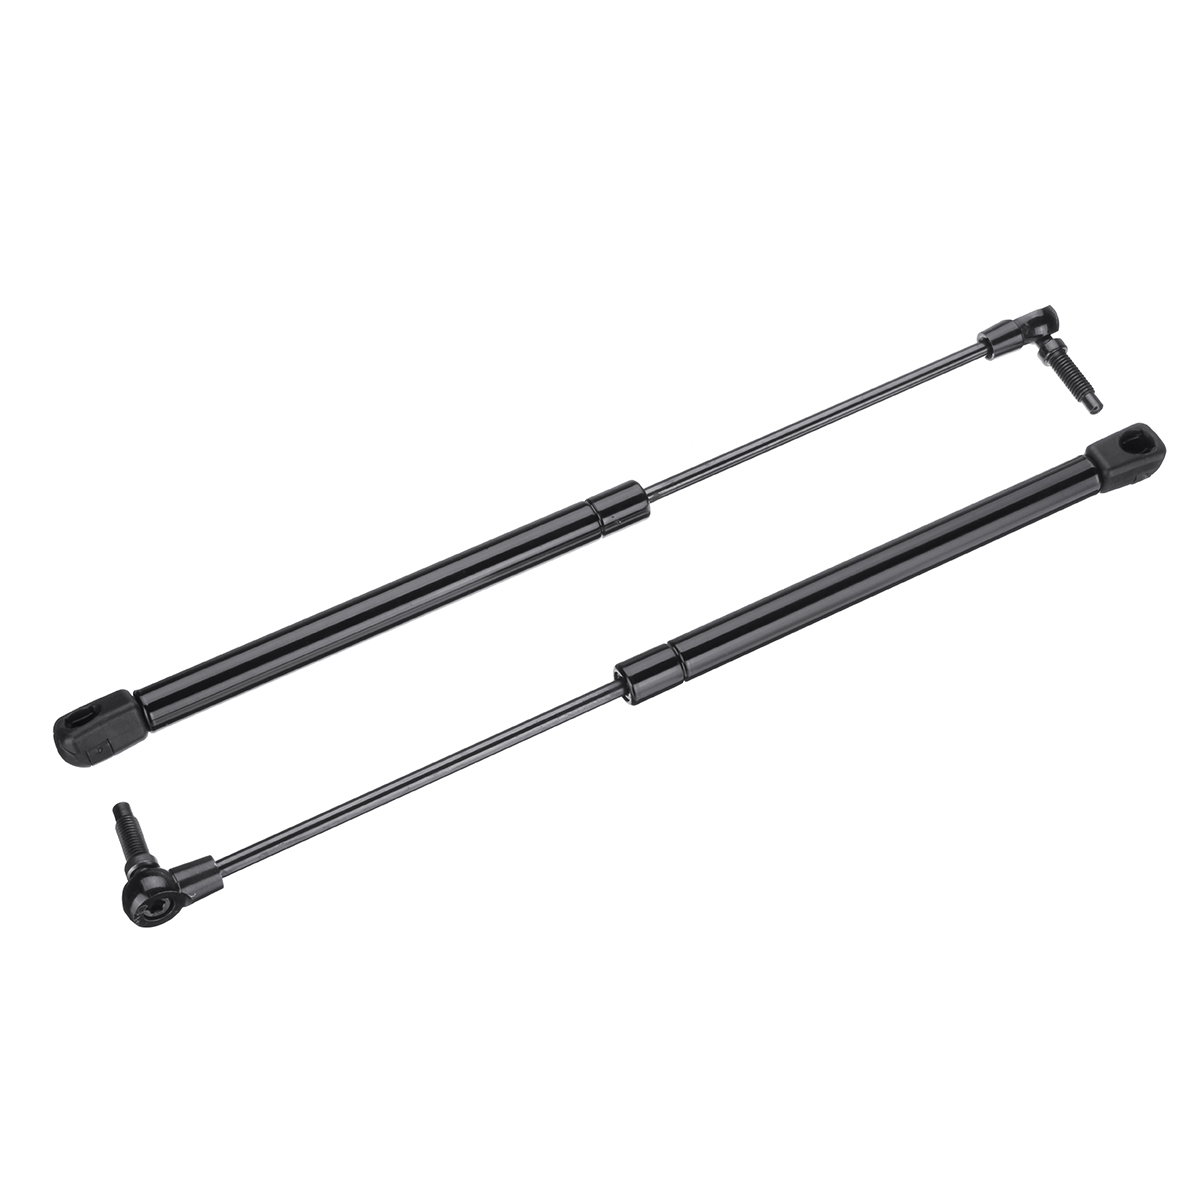 2 x rear window glass gas struts support car supports